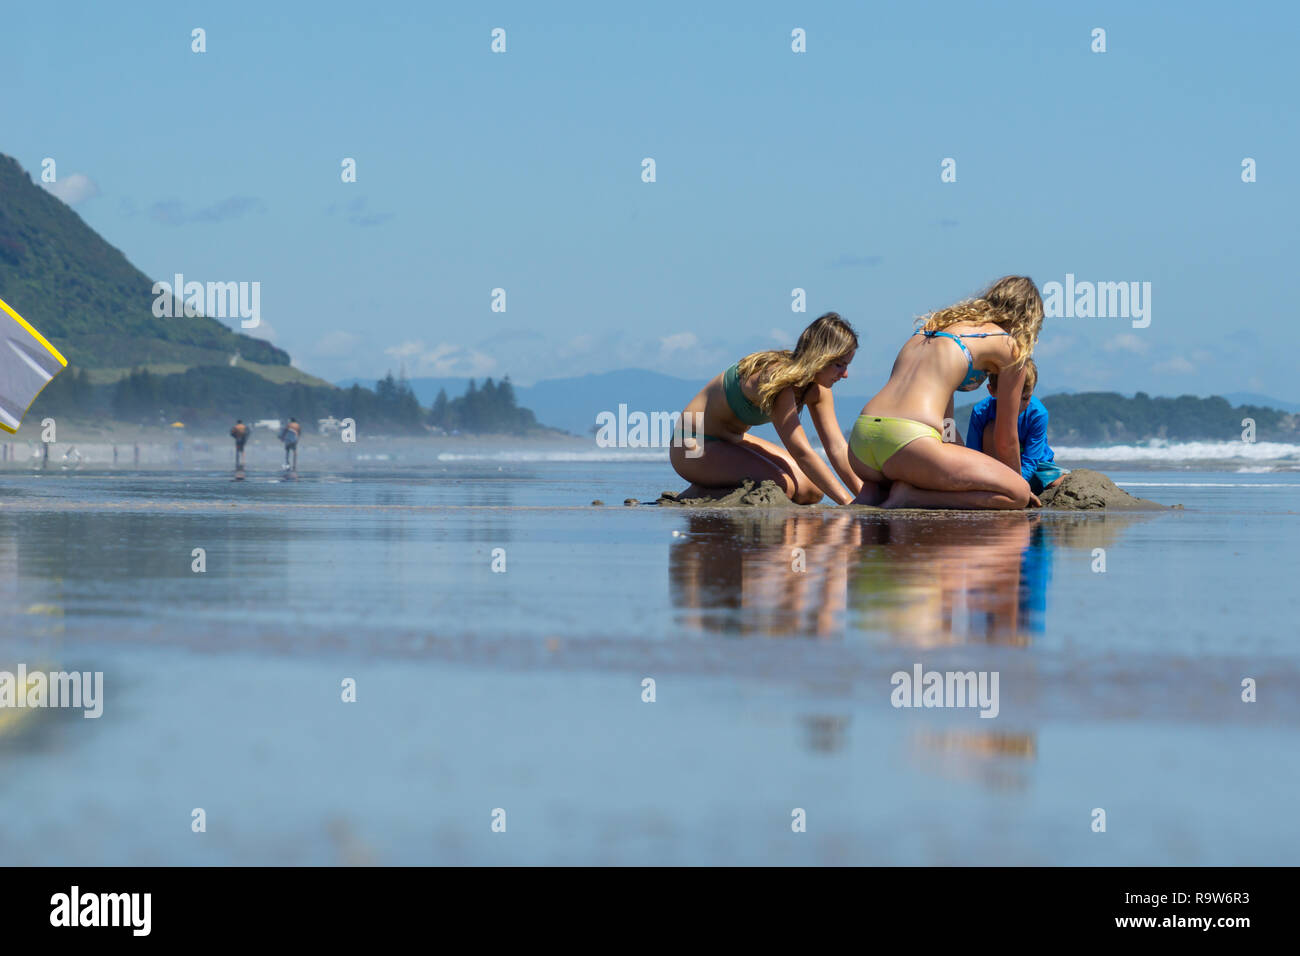 Tauranga New Zealand December 18 2018 Long View Beautiful Ocean Beach With People Enjoying The Weather And Beach Activities Stock Photo Alamy Current conditions, warnings and historical records. https www alamy com tauranga new zealand december 182018 long view beautiful ocean beach with people enjoying the weather and beach activities image229820839 html